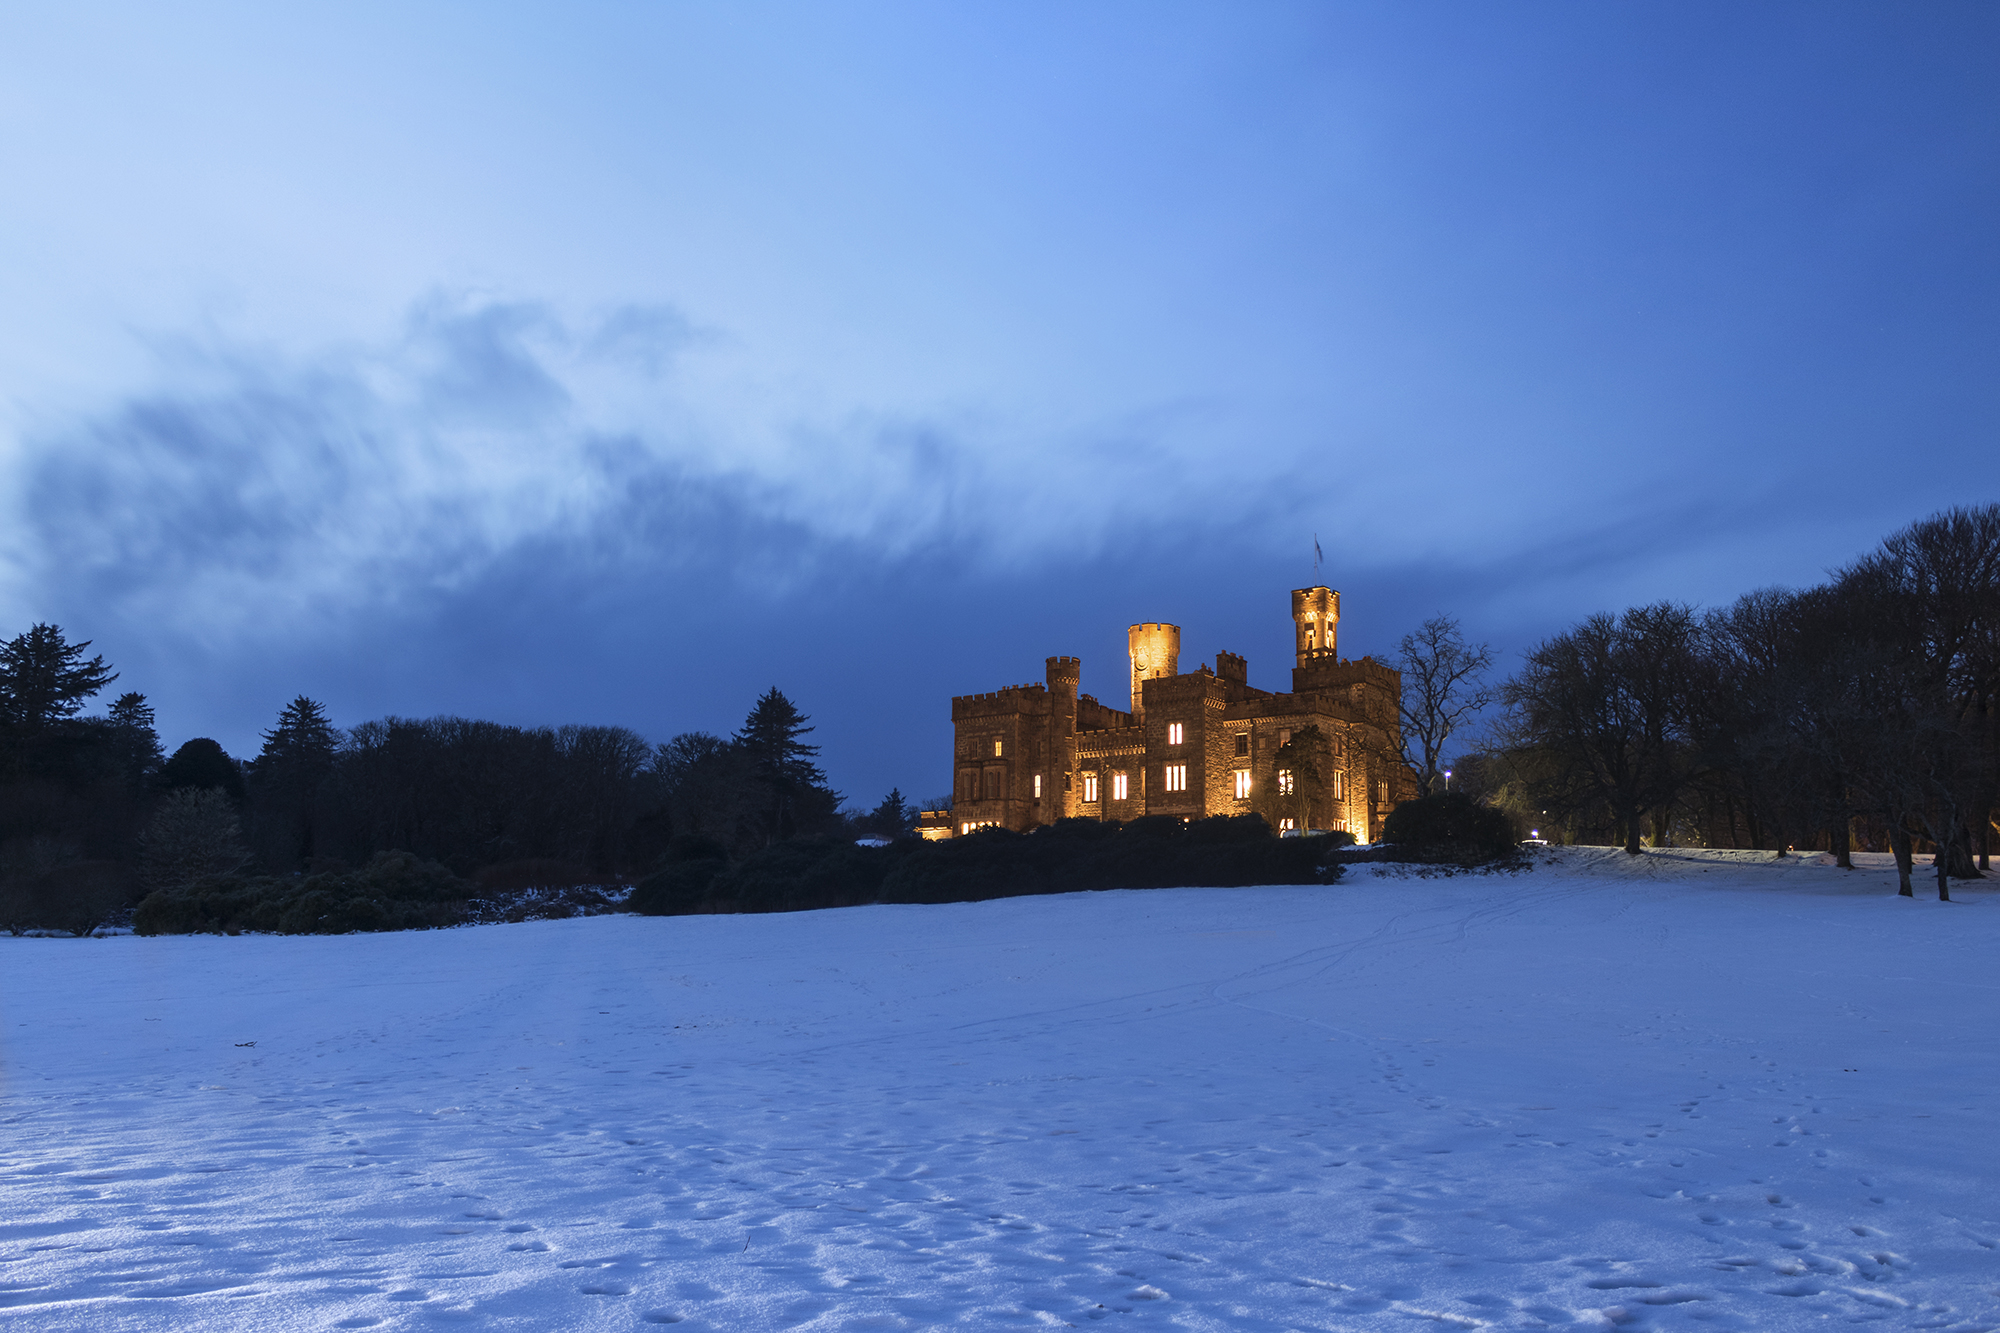 Wintry Castle